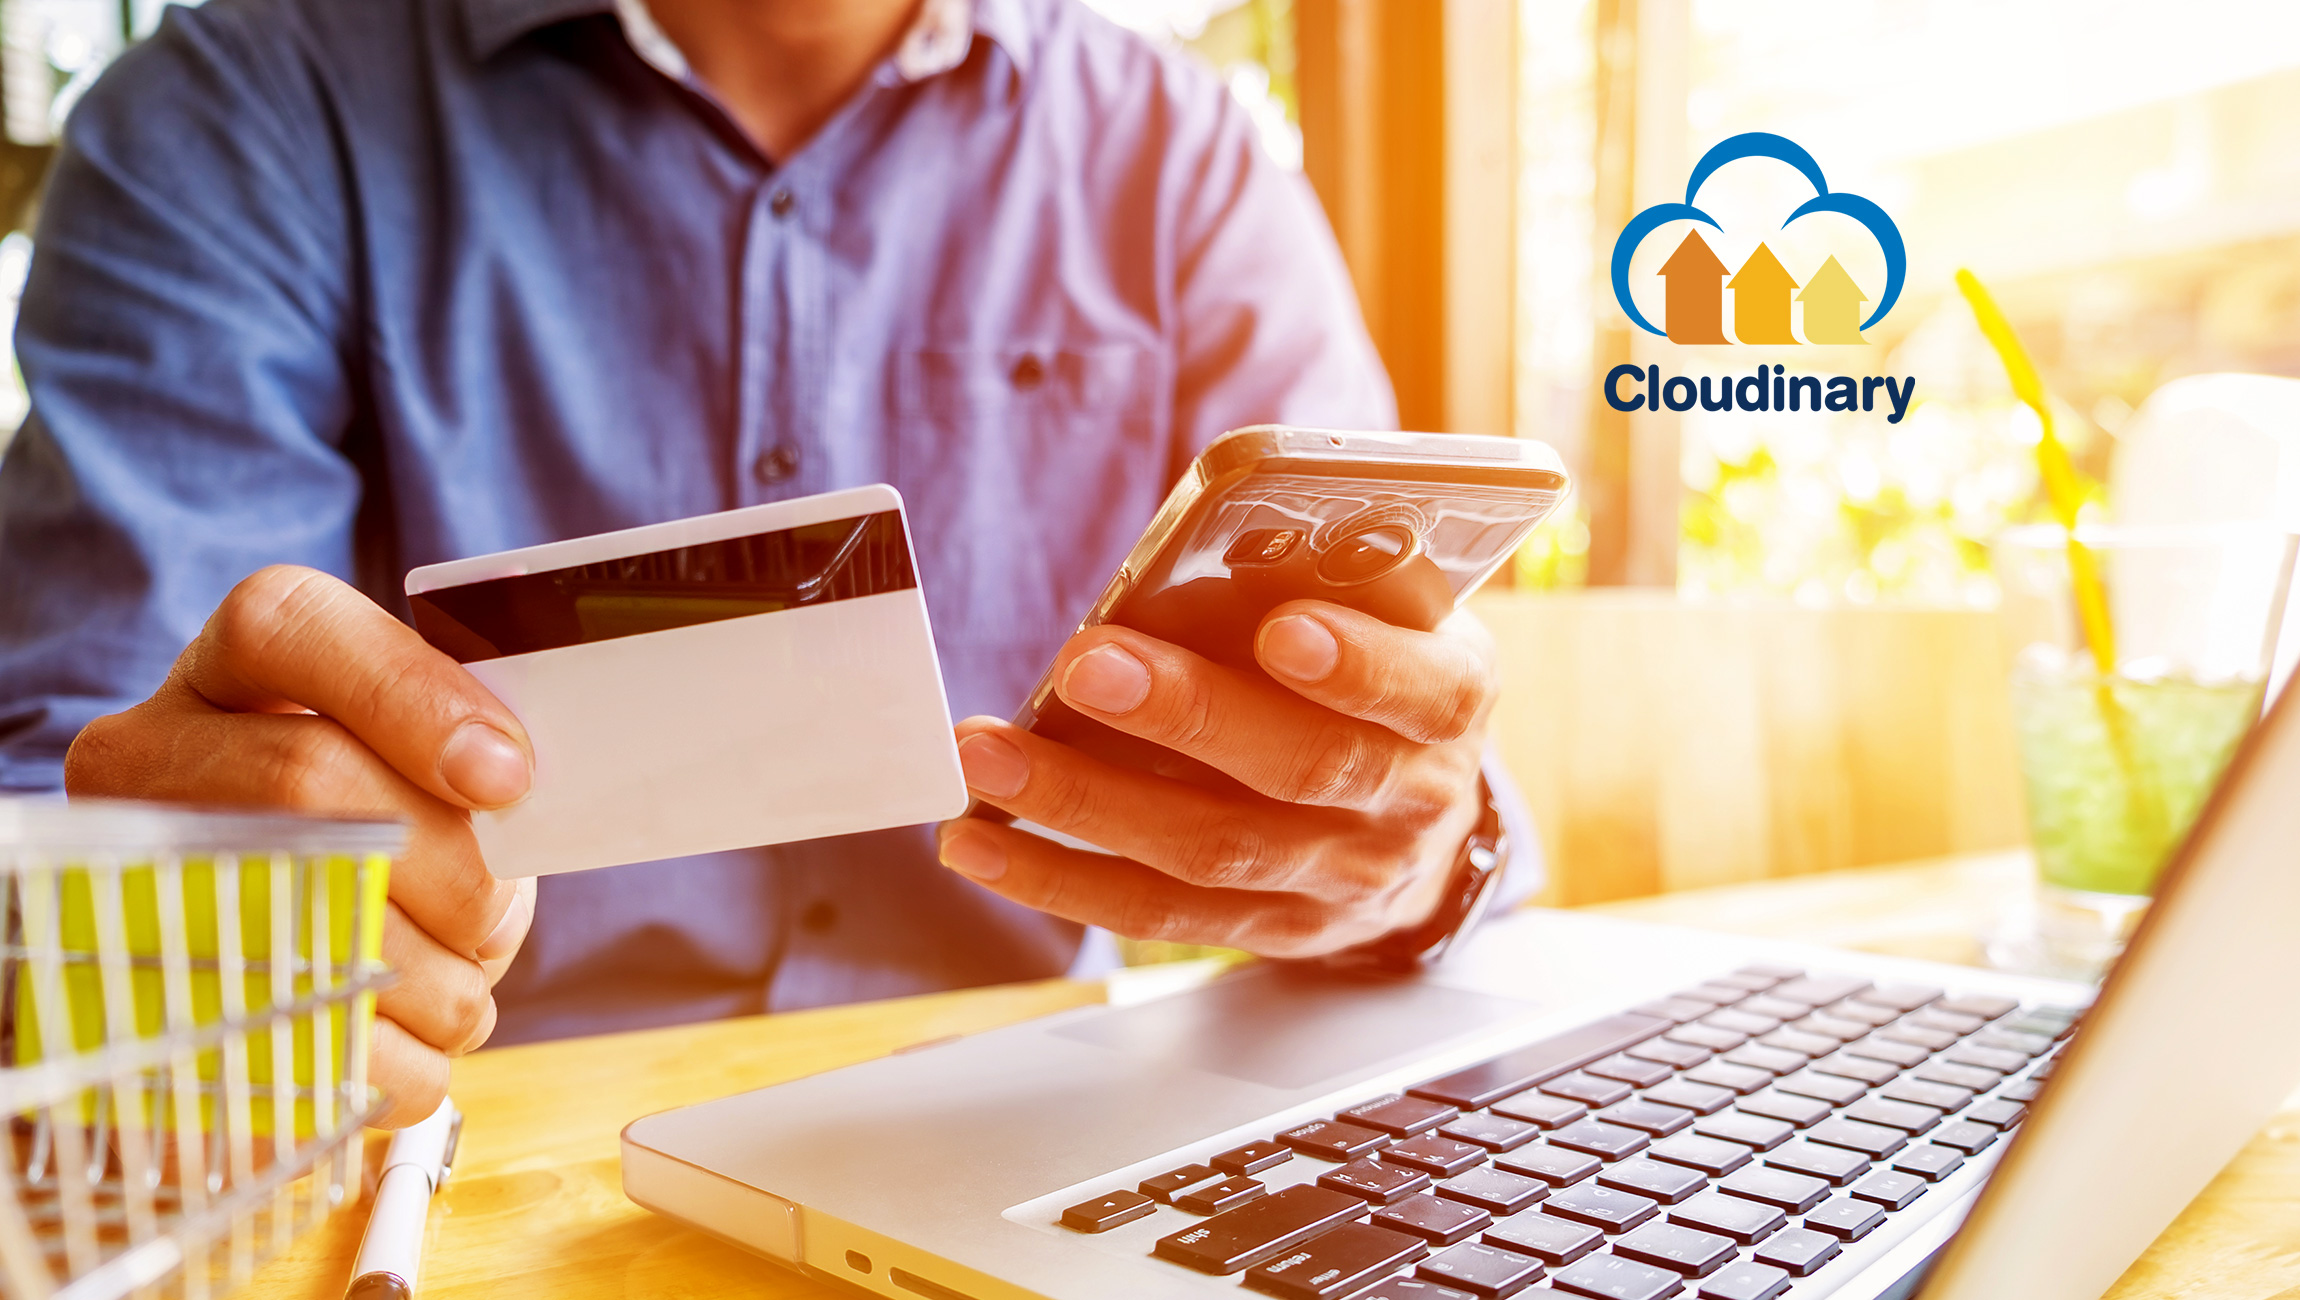 Cloudinary Expands Media Management Solution for E-Commerce